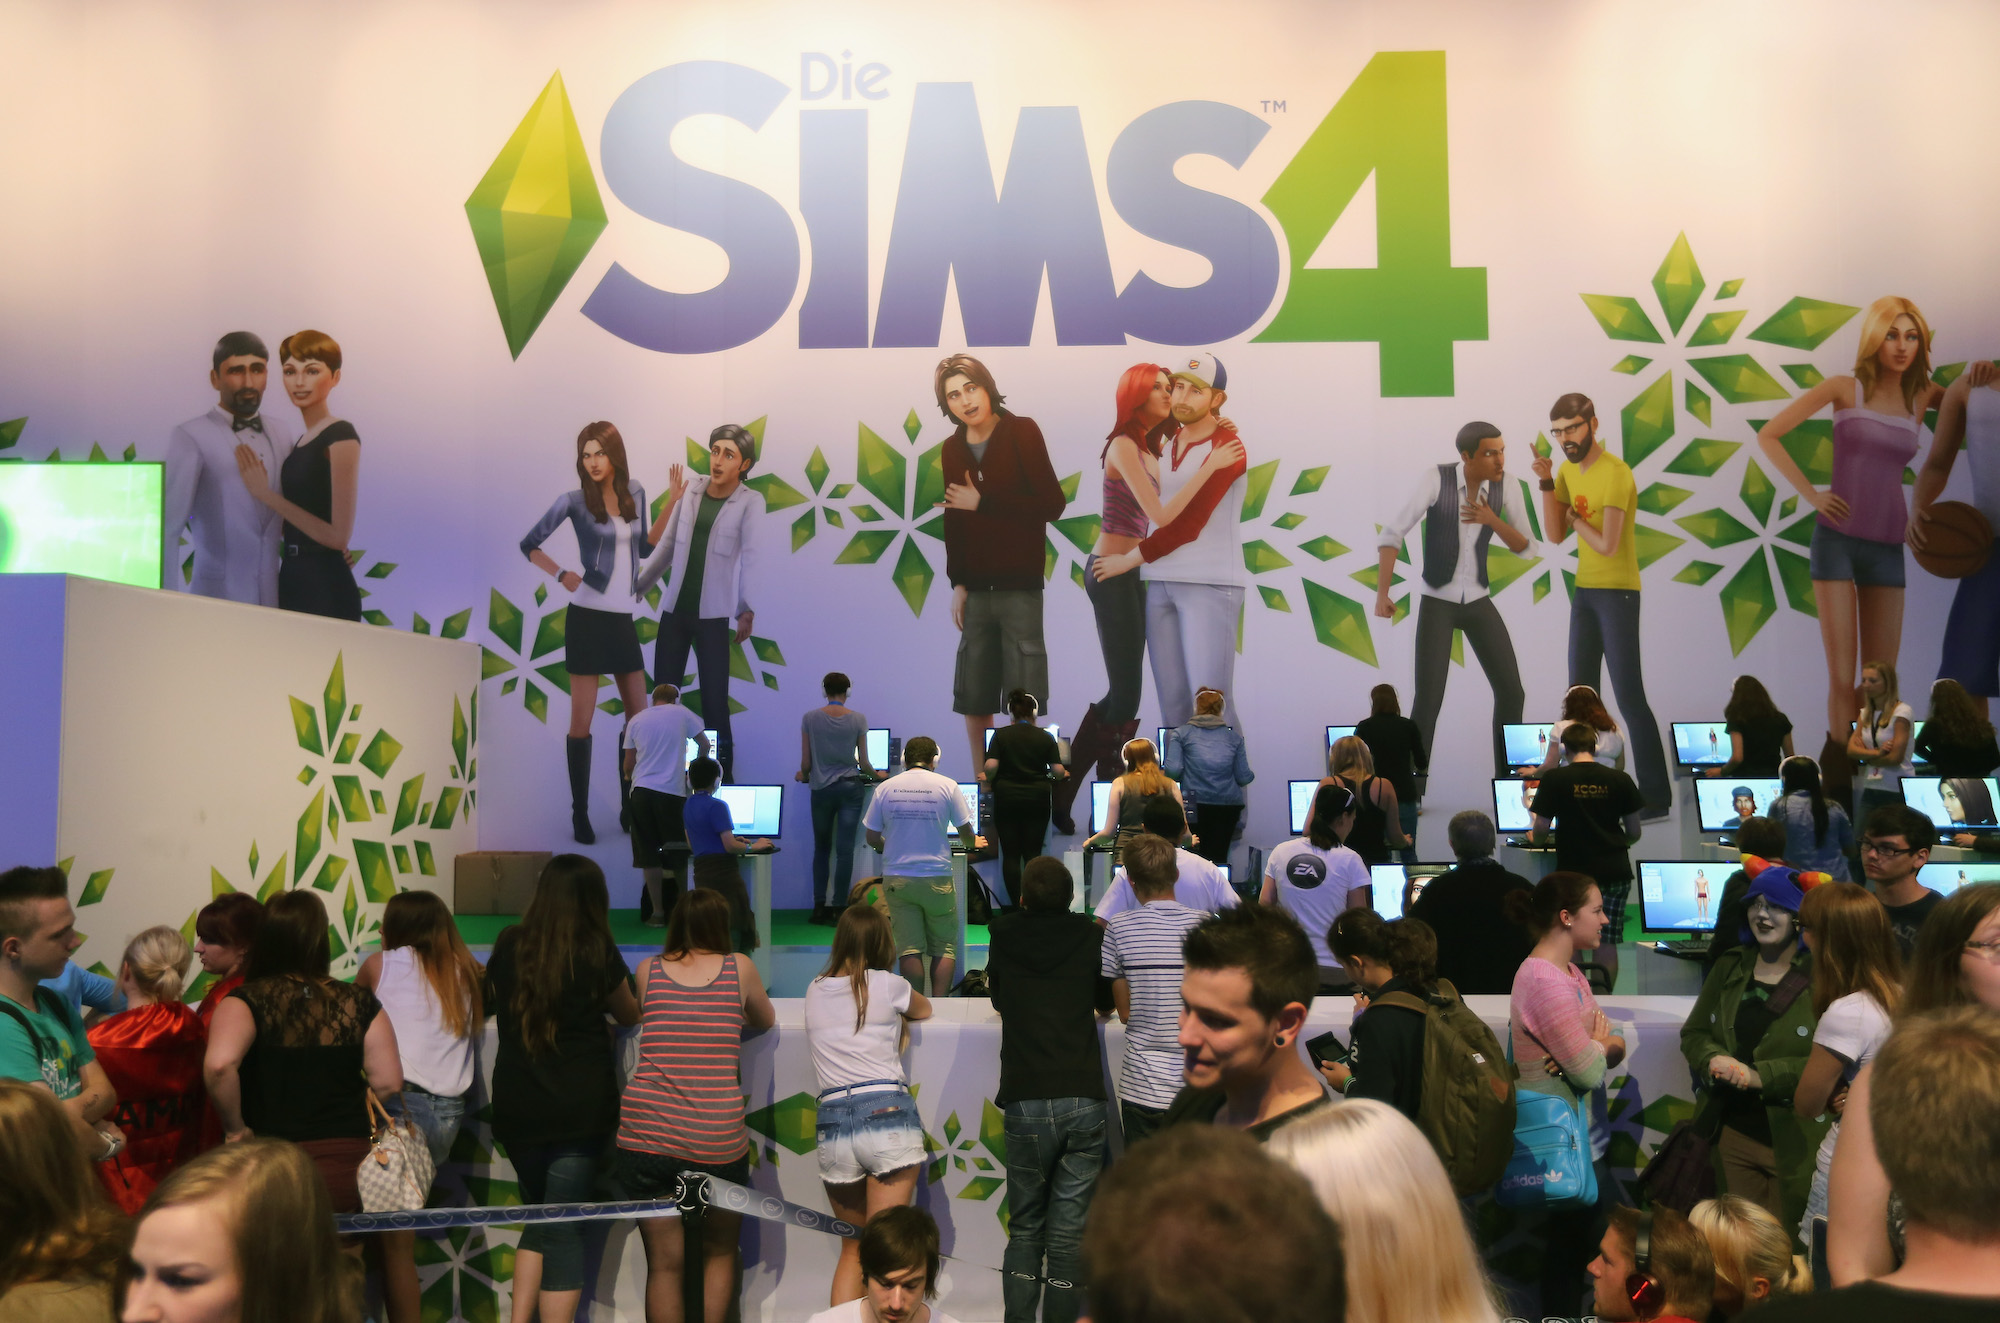 Gaming enthusiasts try out the 'The Sims 4' game on the new XBOX at the Gamescom 2013 gaming trade air on August 22, 2013